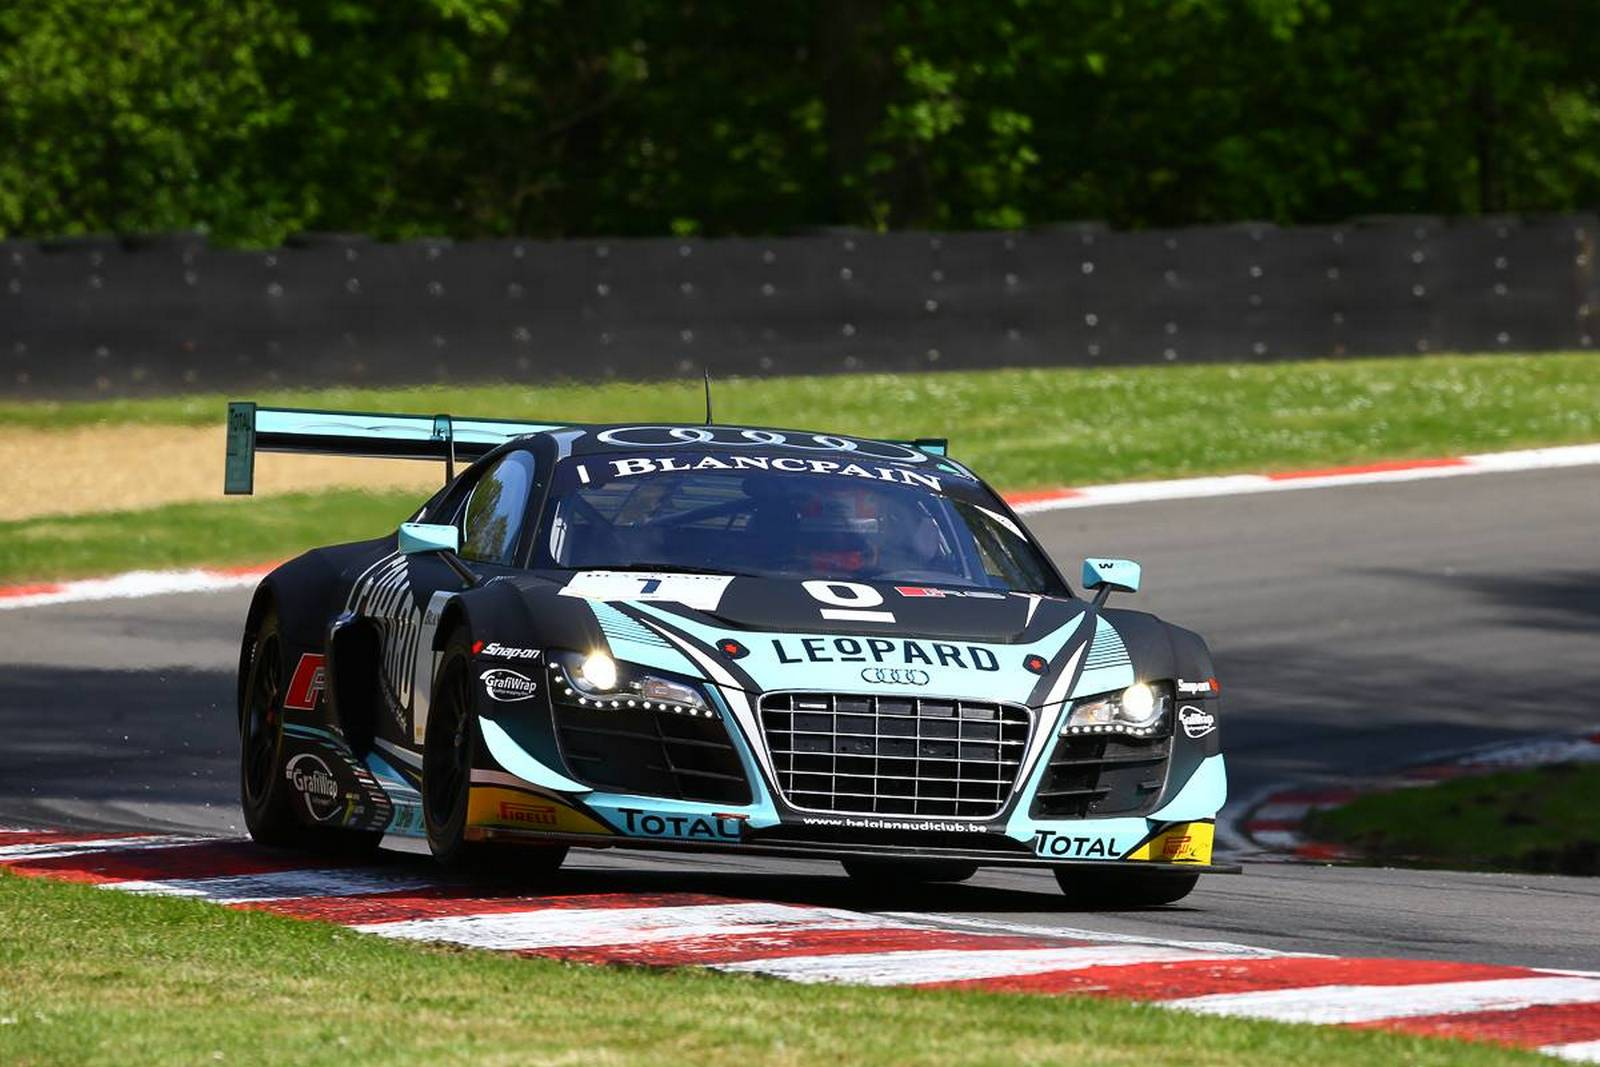 Blancpain Gt Audi Wins At Brands Hatch As Bentley